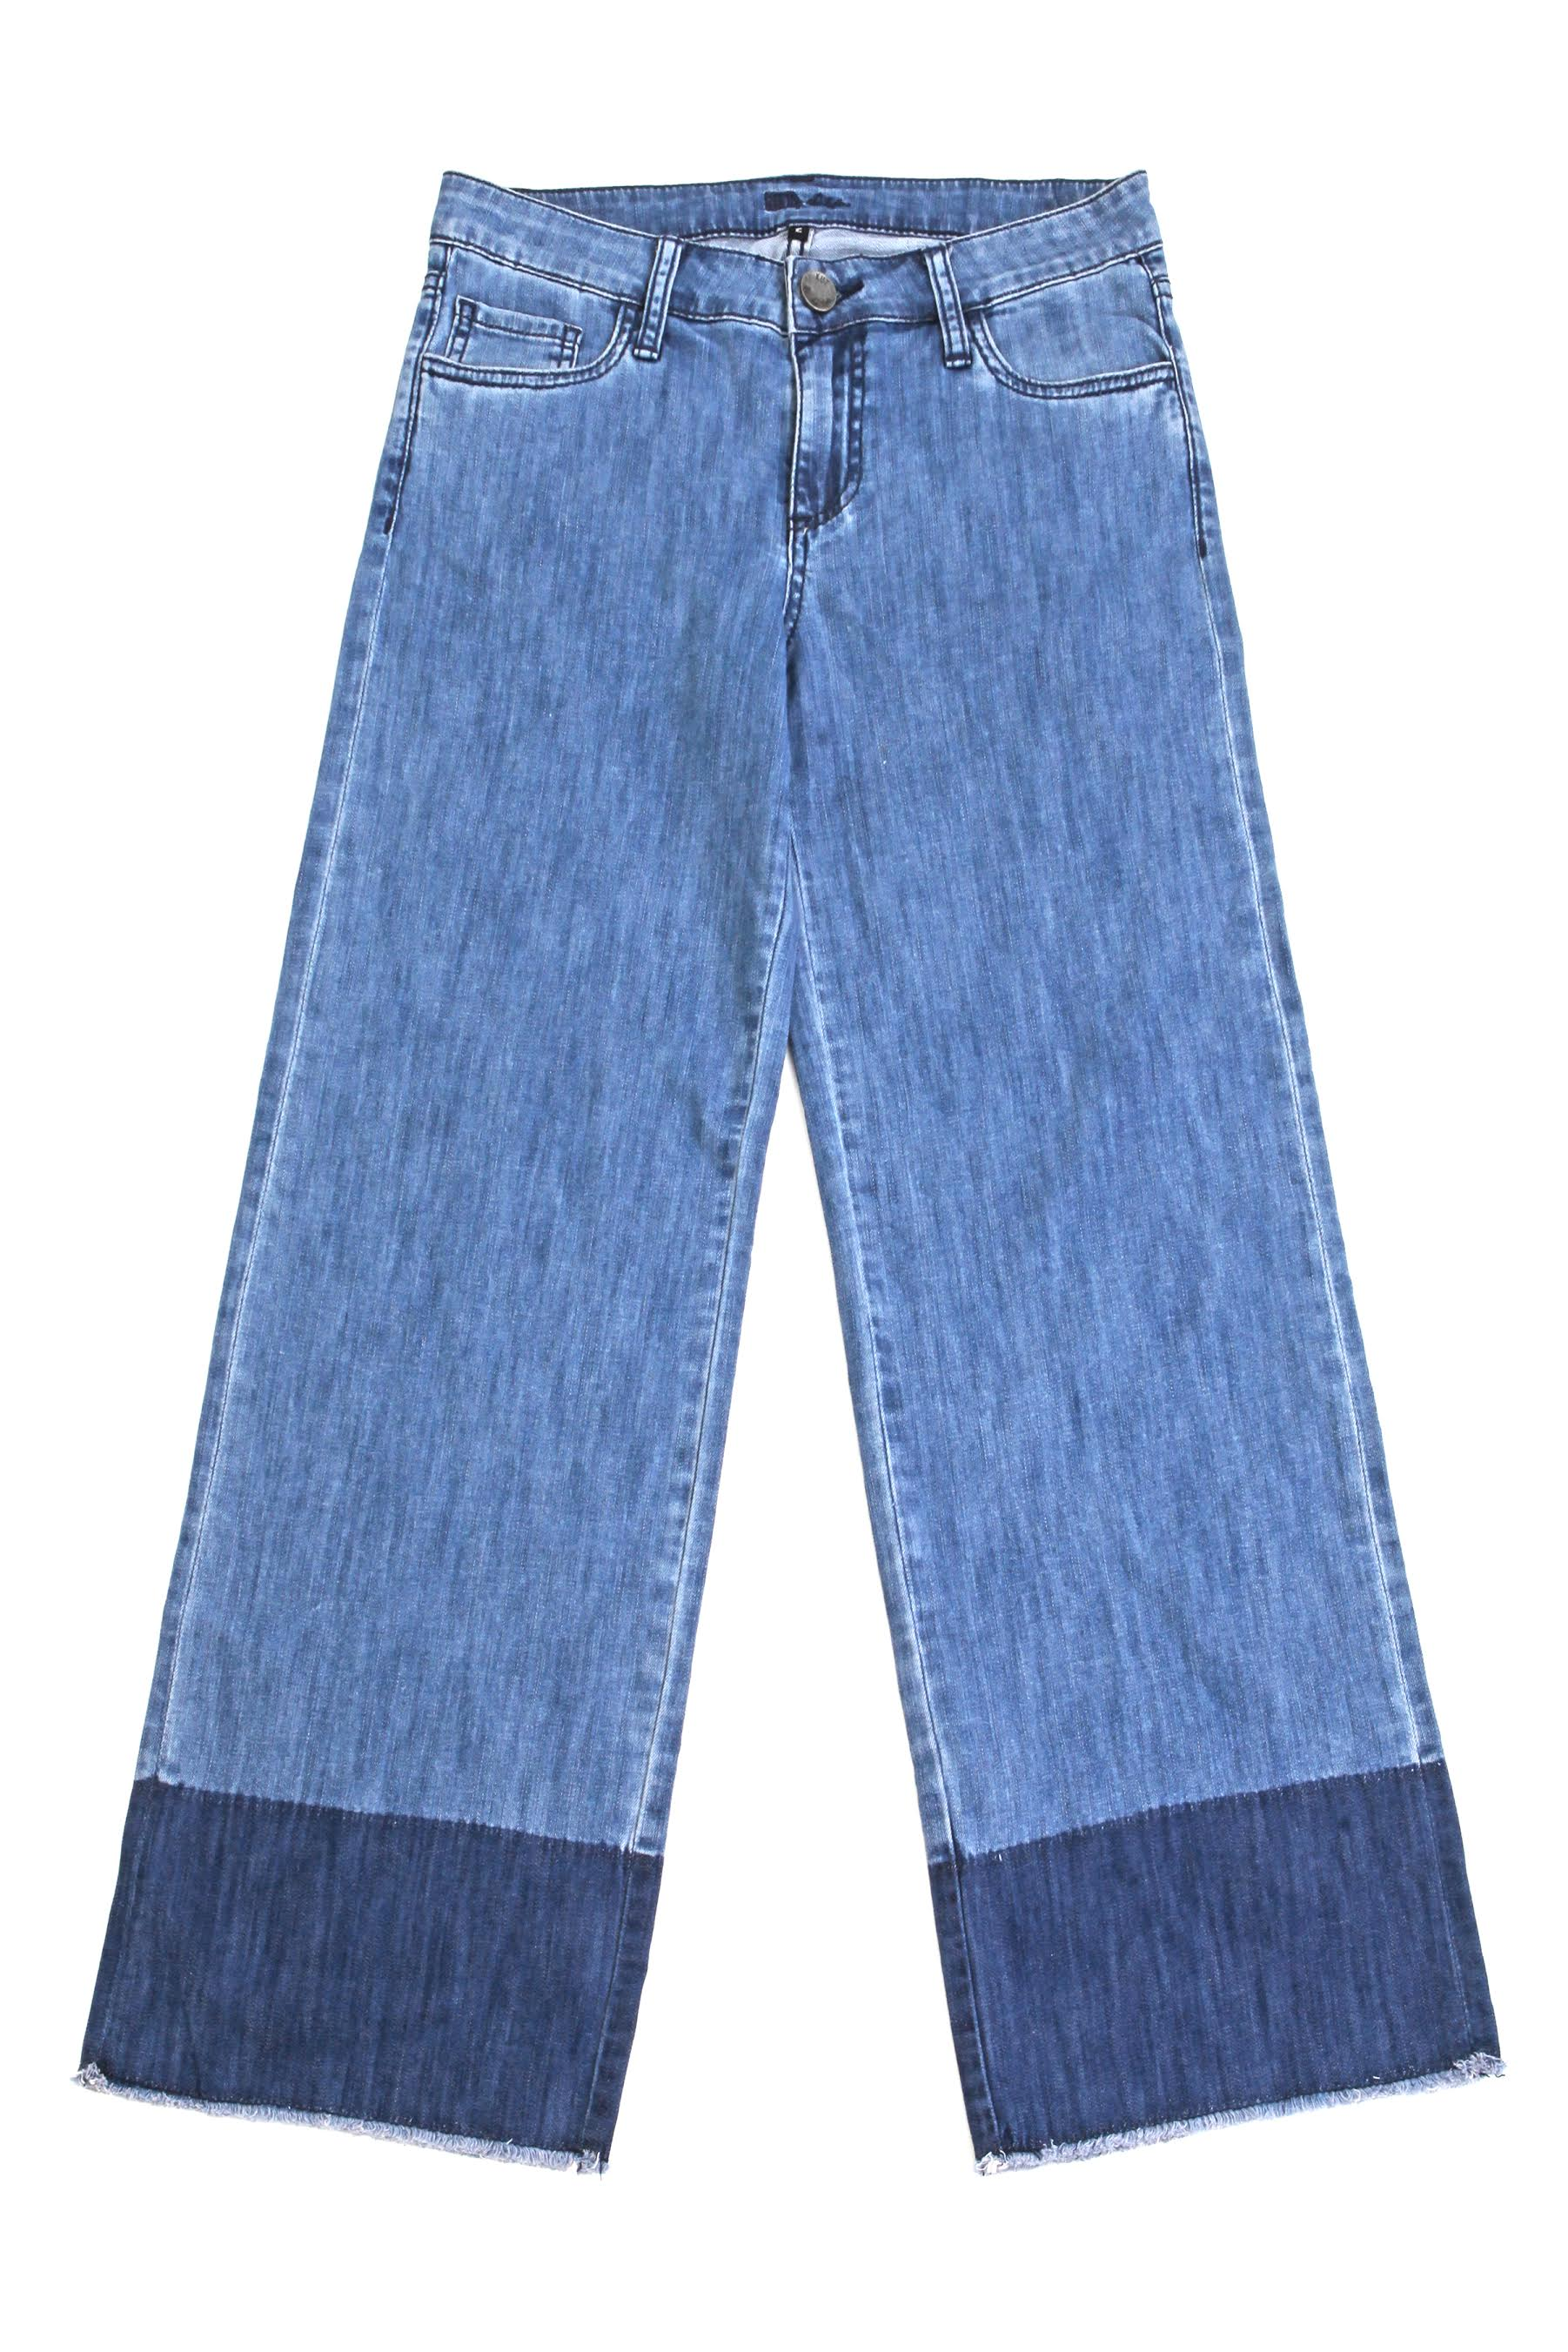 0fd9c264acea Learn About Denim Fashion Terms